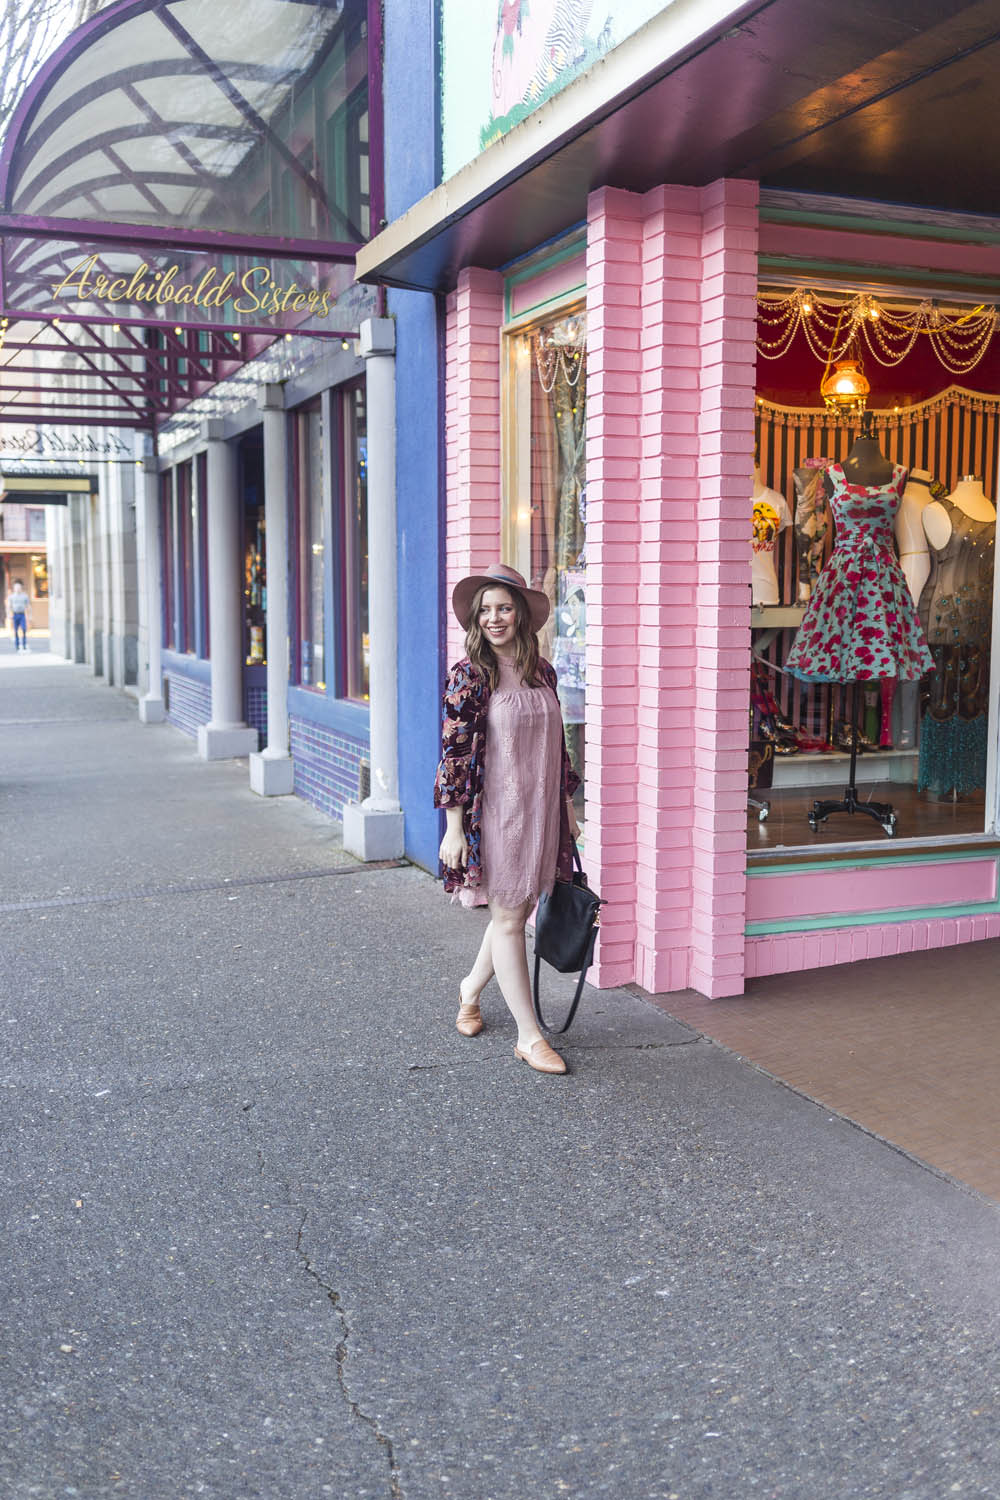 Things to do in Olympia WA: Shop at Local Boutiques like Hot Toddy, Compass, Rose, Archibald Sisters, and more! // Seattle Travel Blogger